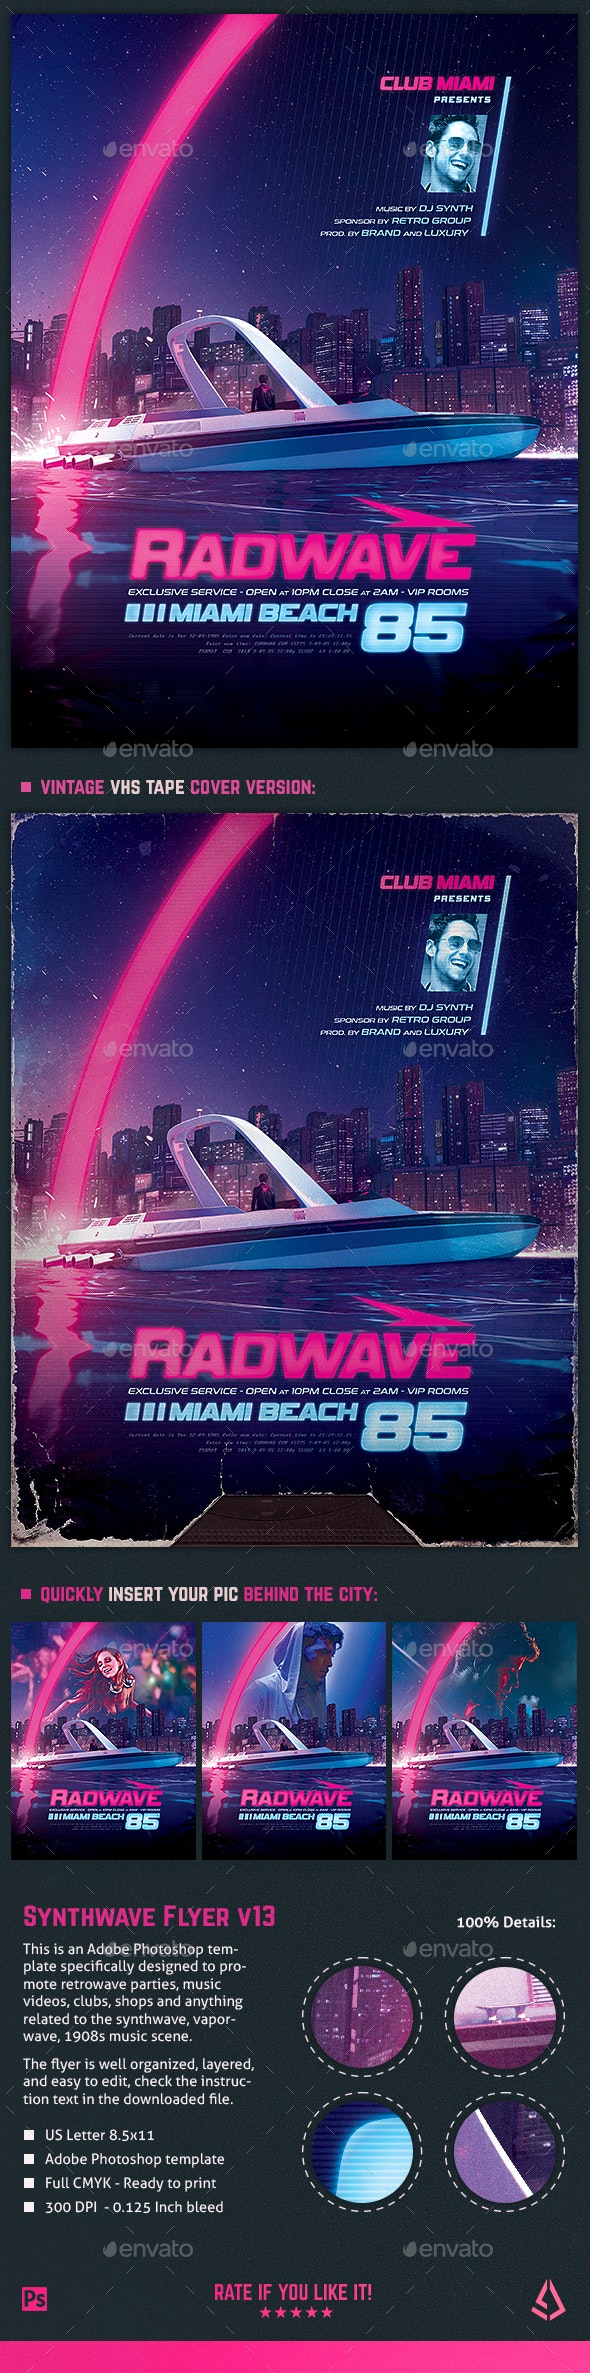 Synthwave Flyer v13 Retrowave 80s Template - Clubs & Parties Events